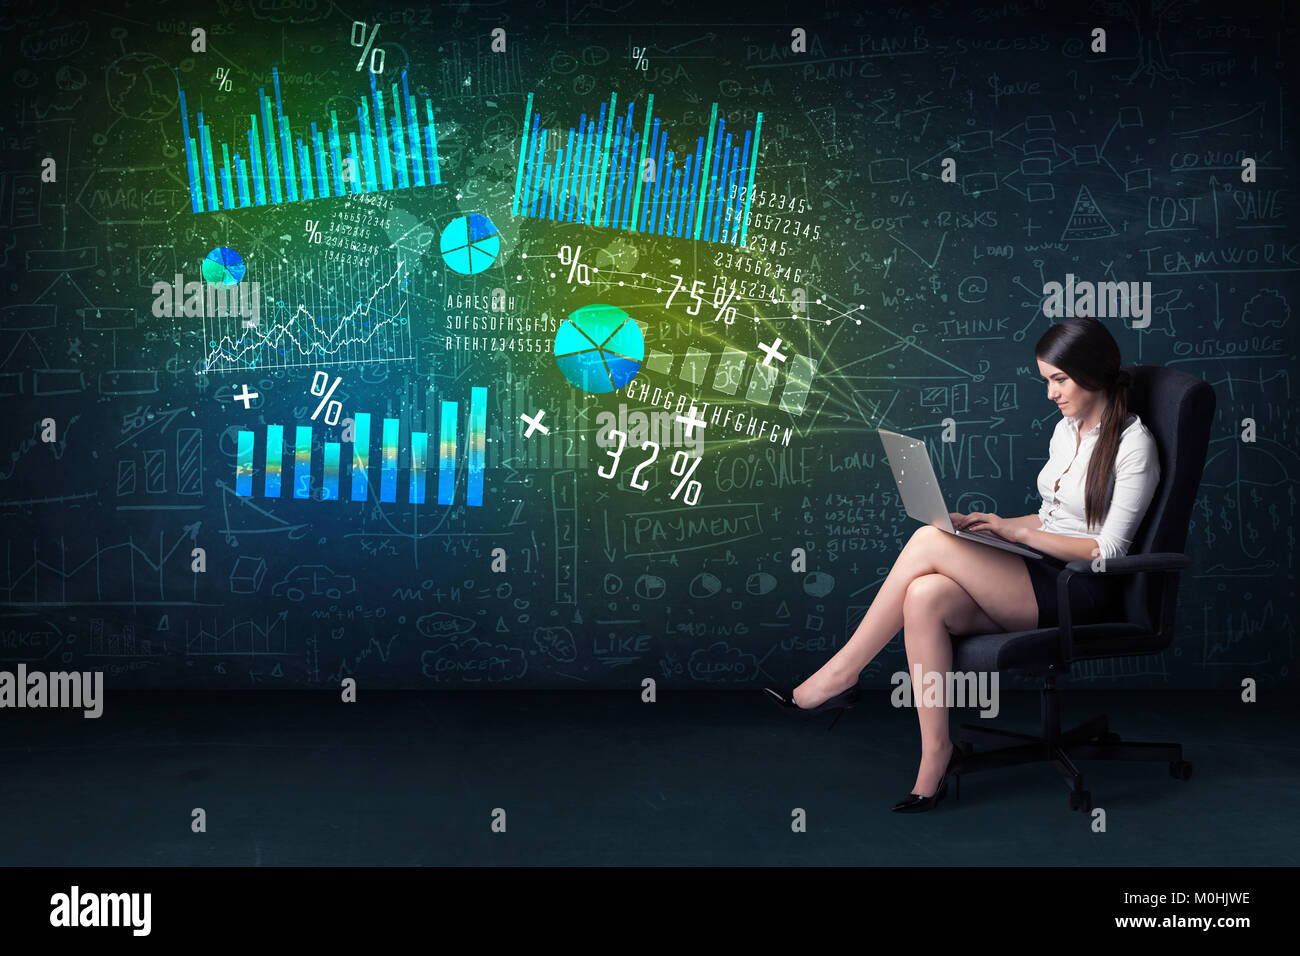 Businesswoman in office avec lapotp dans la main et la haute technologie des cartes graphique sur fond de concept Photo Stock